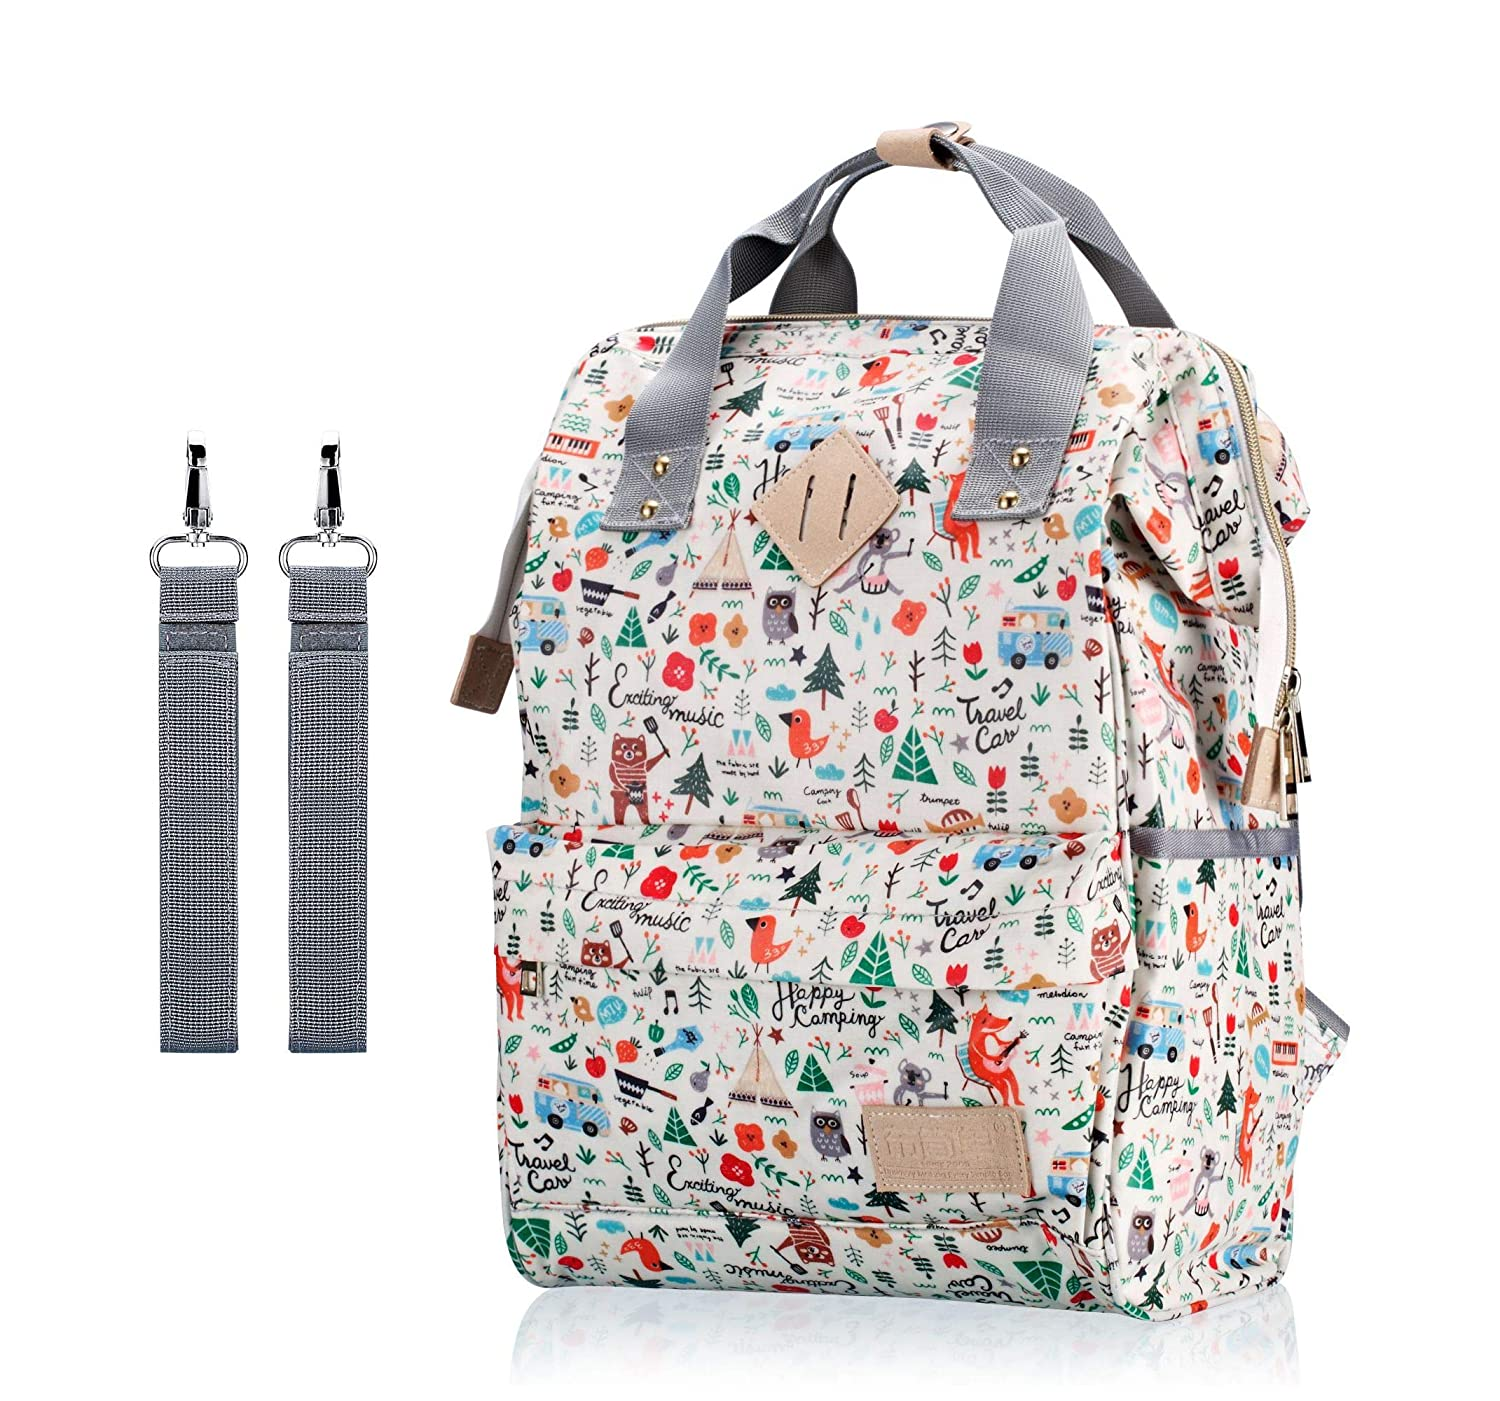 Diaper Bag Backpack, IHONEY Waterproof Cute Design Diaper Tote for Boys and Girls with Stroller Straps HH I HONEY DZSM-1087